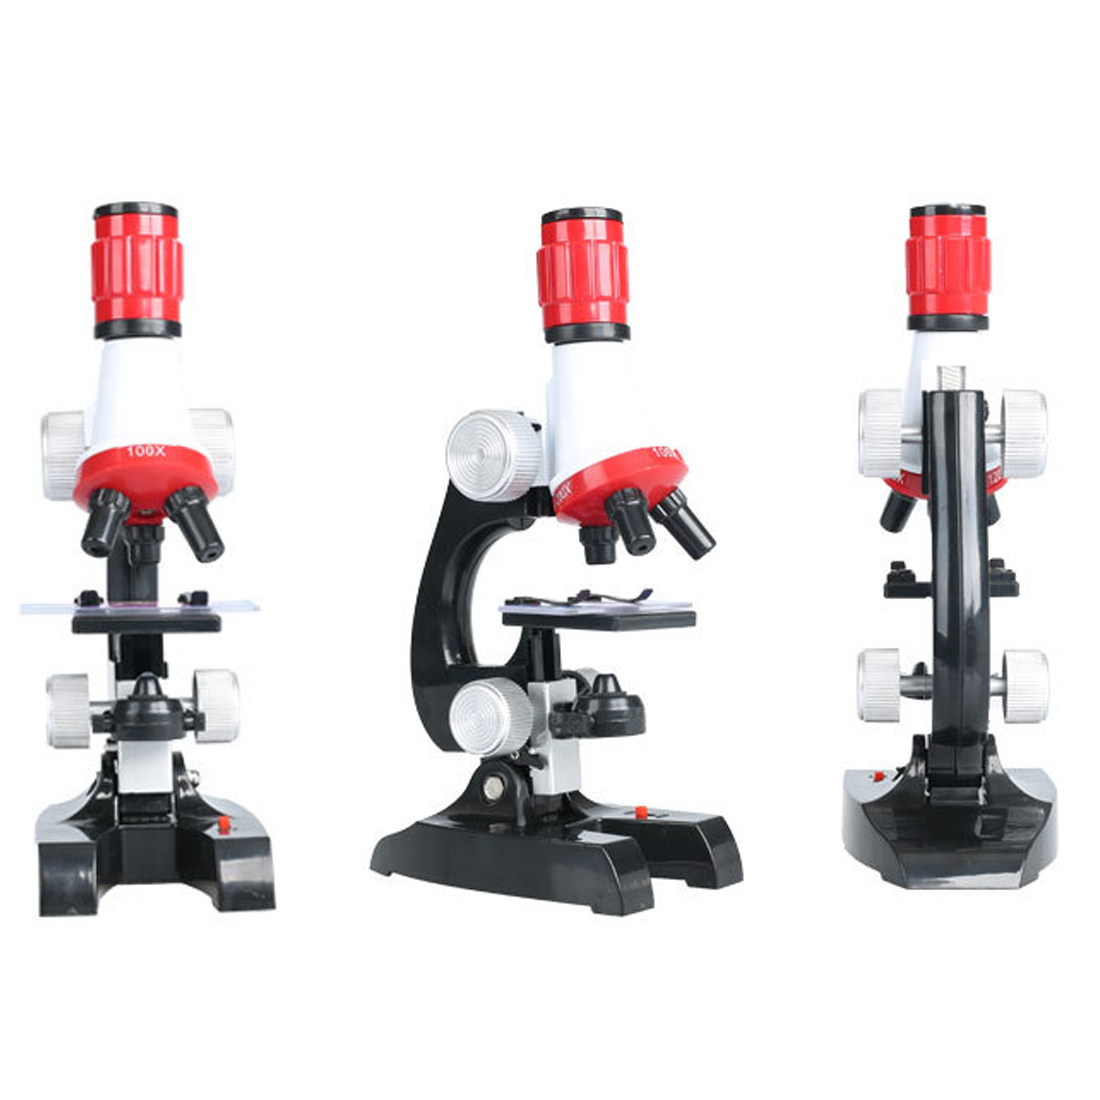 1pc Home School Science Educational Supplies Refined Biological 100X/400X/1200X Microscope + 12/24/36 specimen